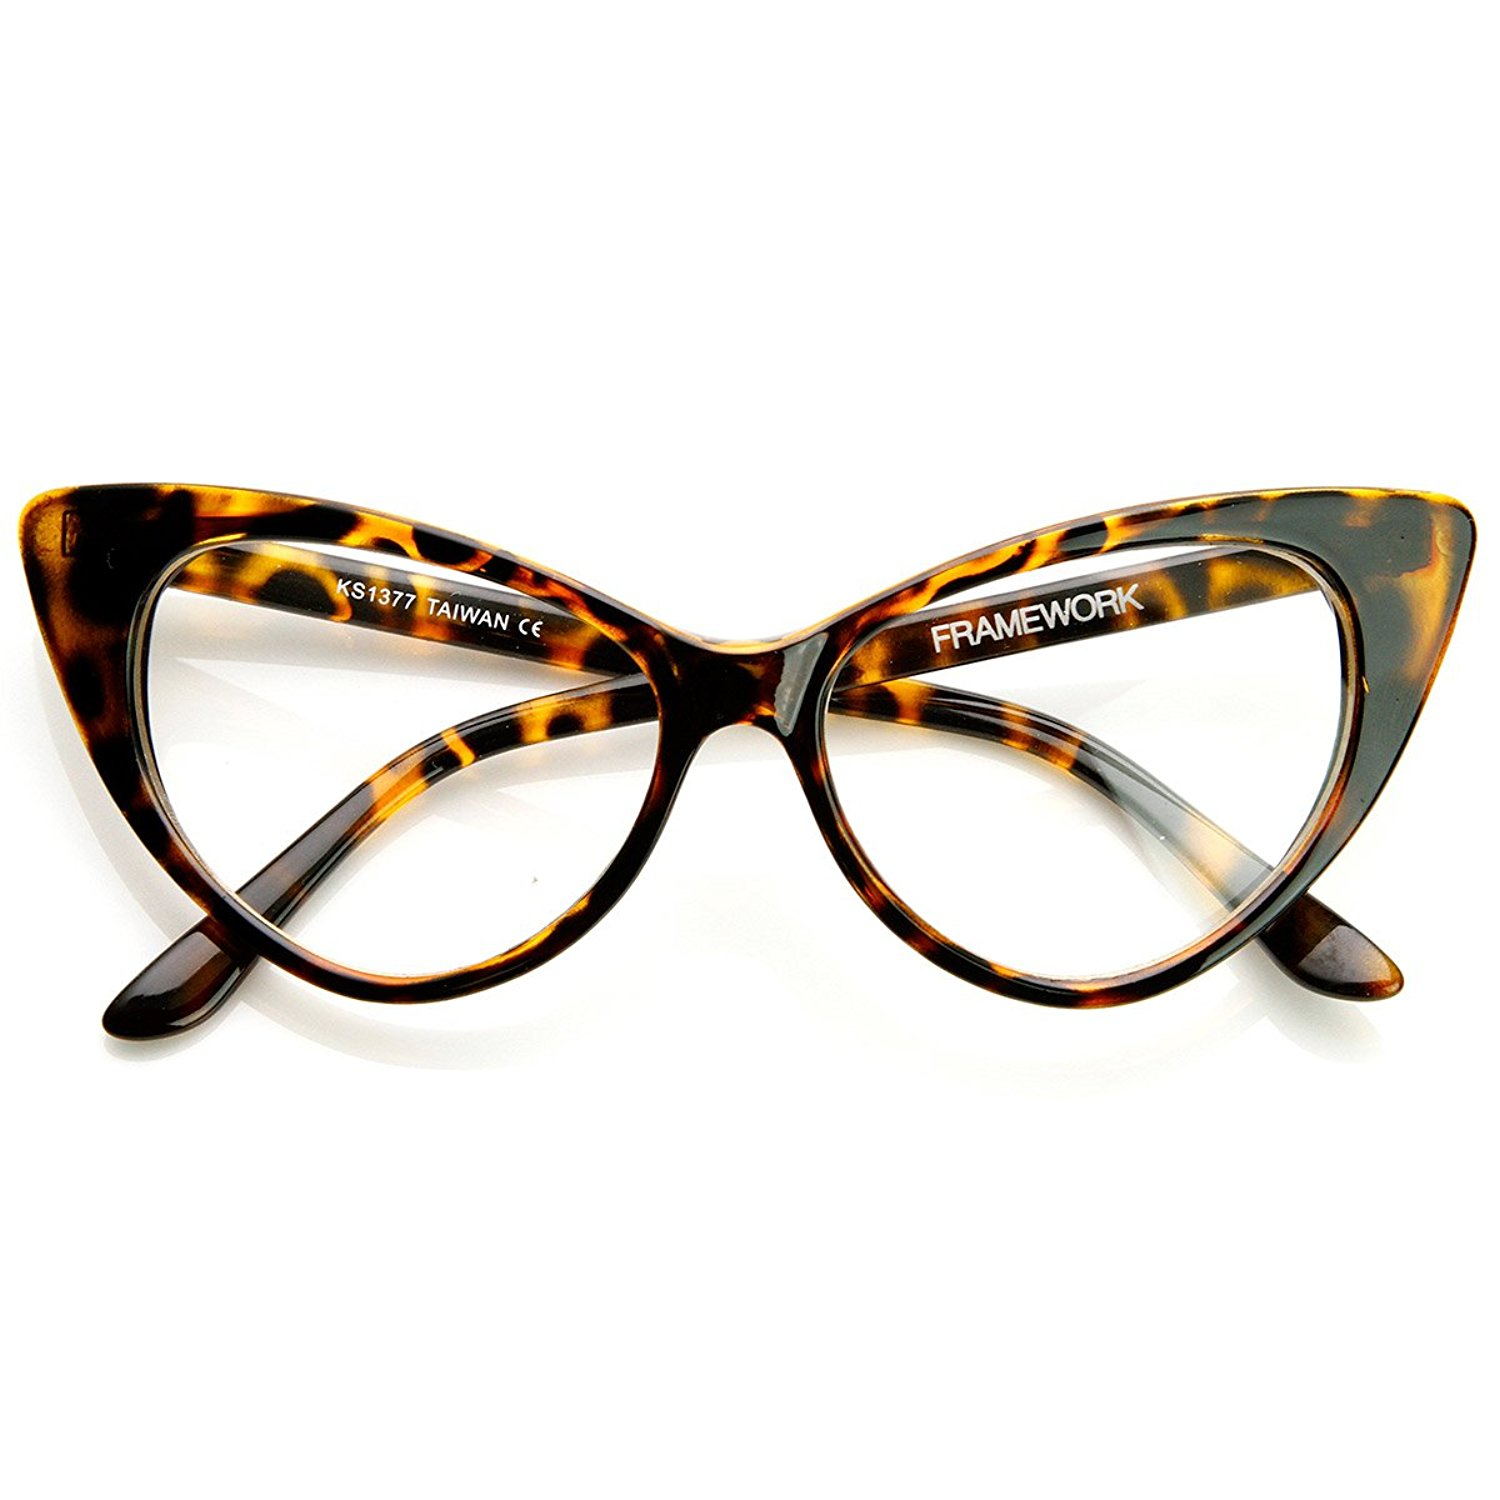 3569d4010a35 Get Quotations · zeroUV - Super Cat Eye Glasses Vintage Inspired Mod Fashion  Clear Lens Eyewear